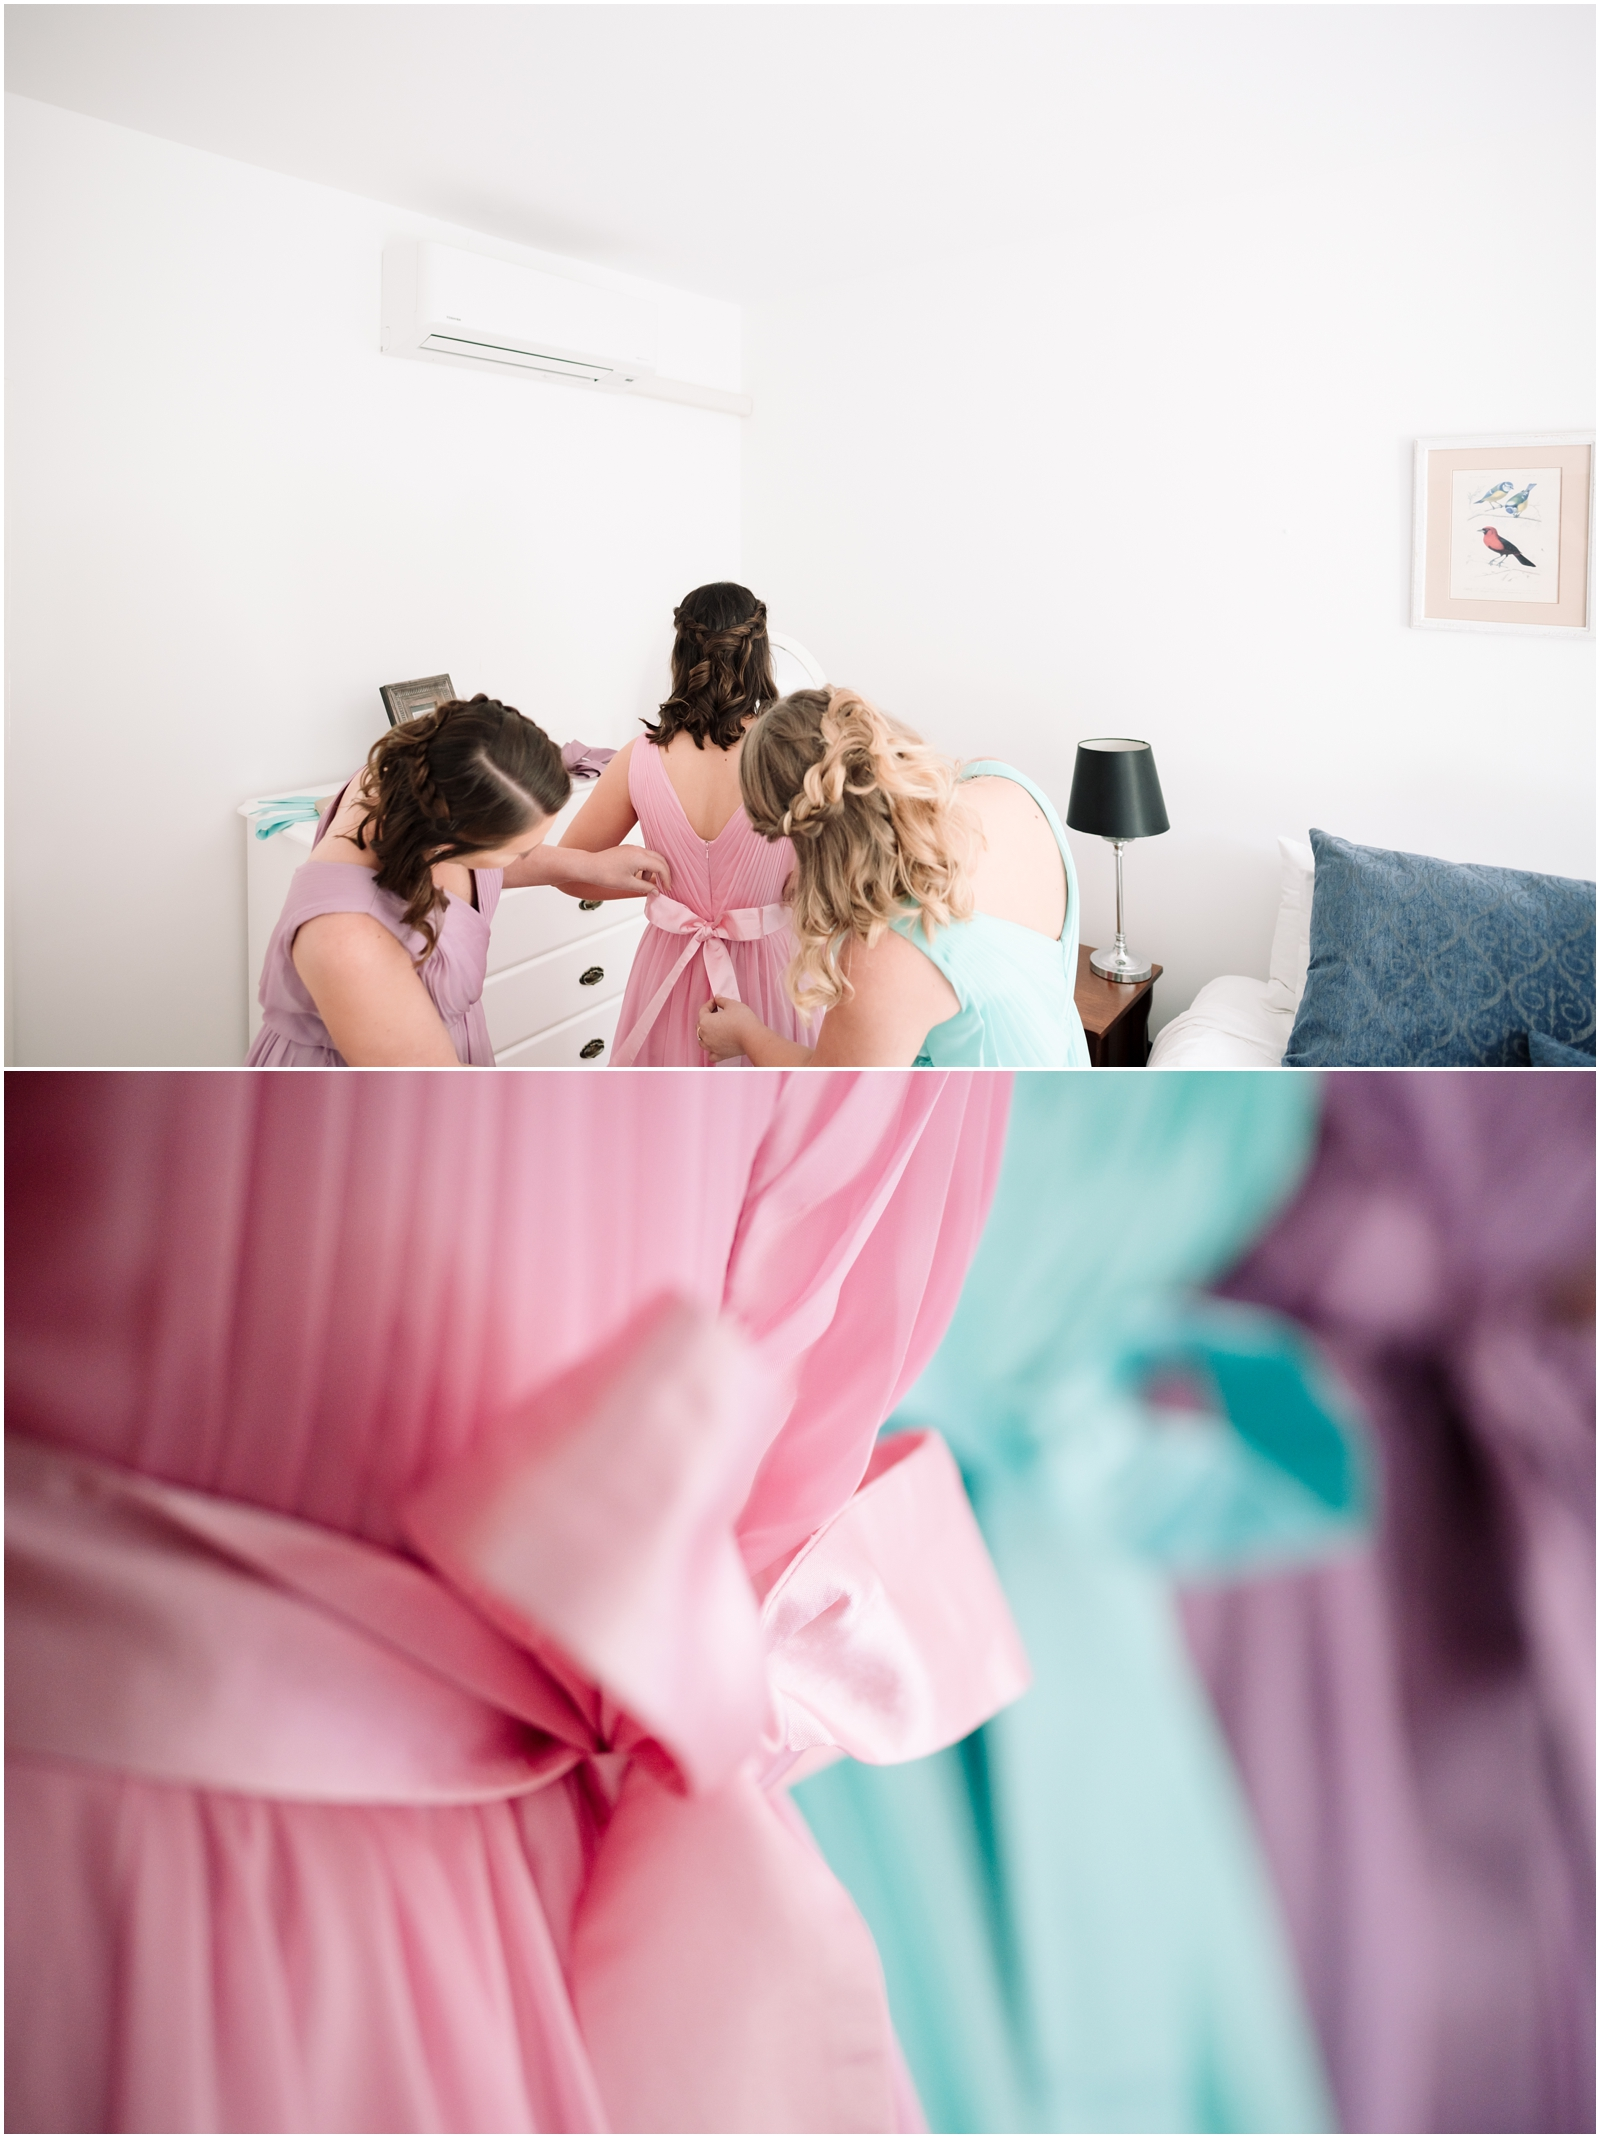 Popcorn Photography Adelaide Wedding Photographer_0017.jpg